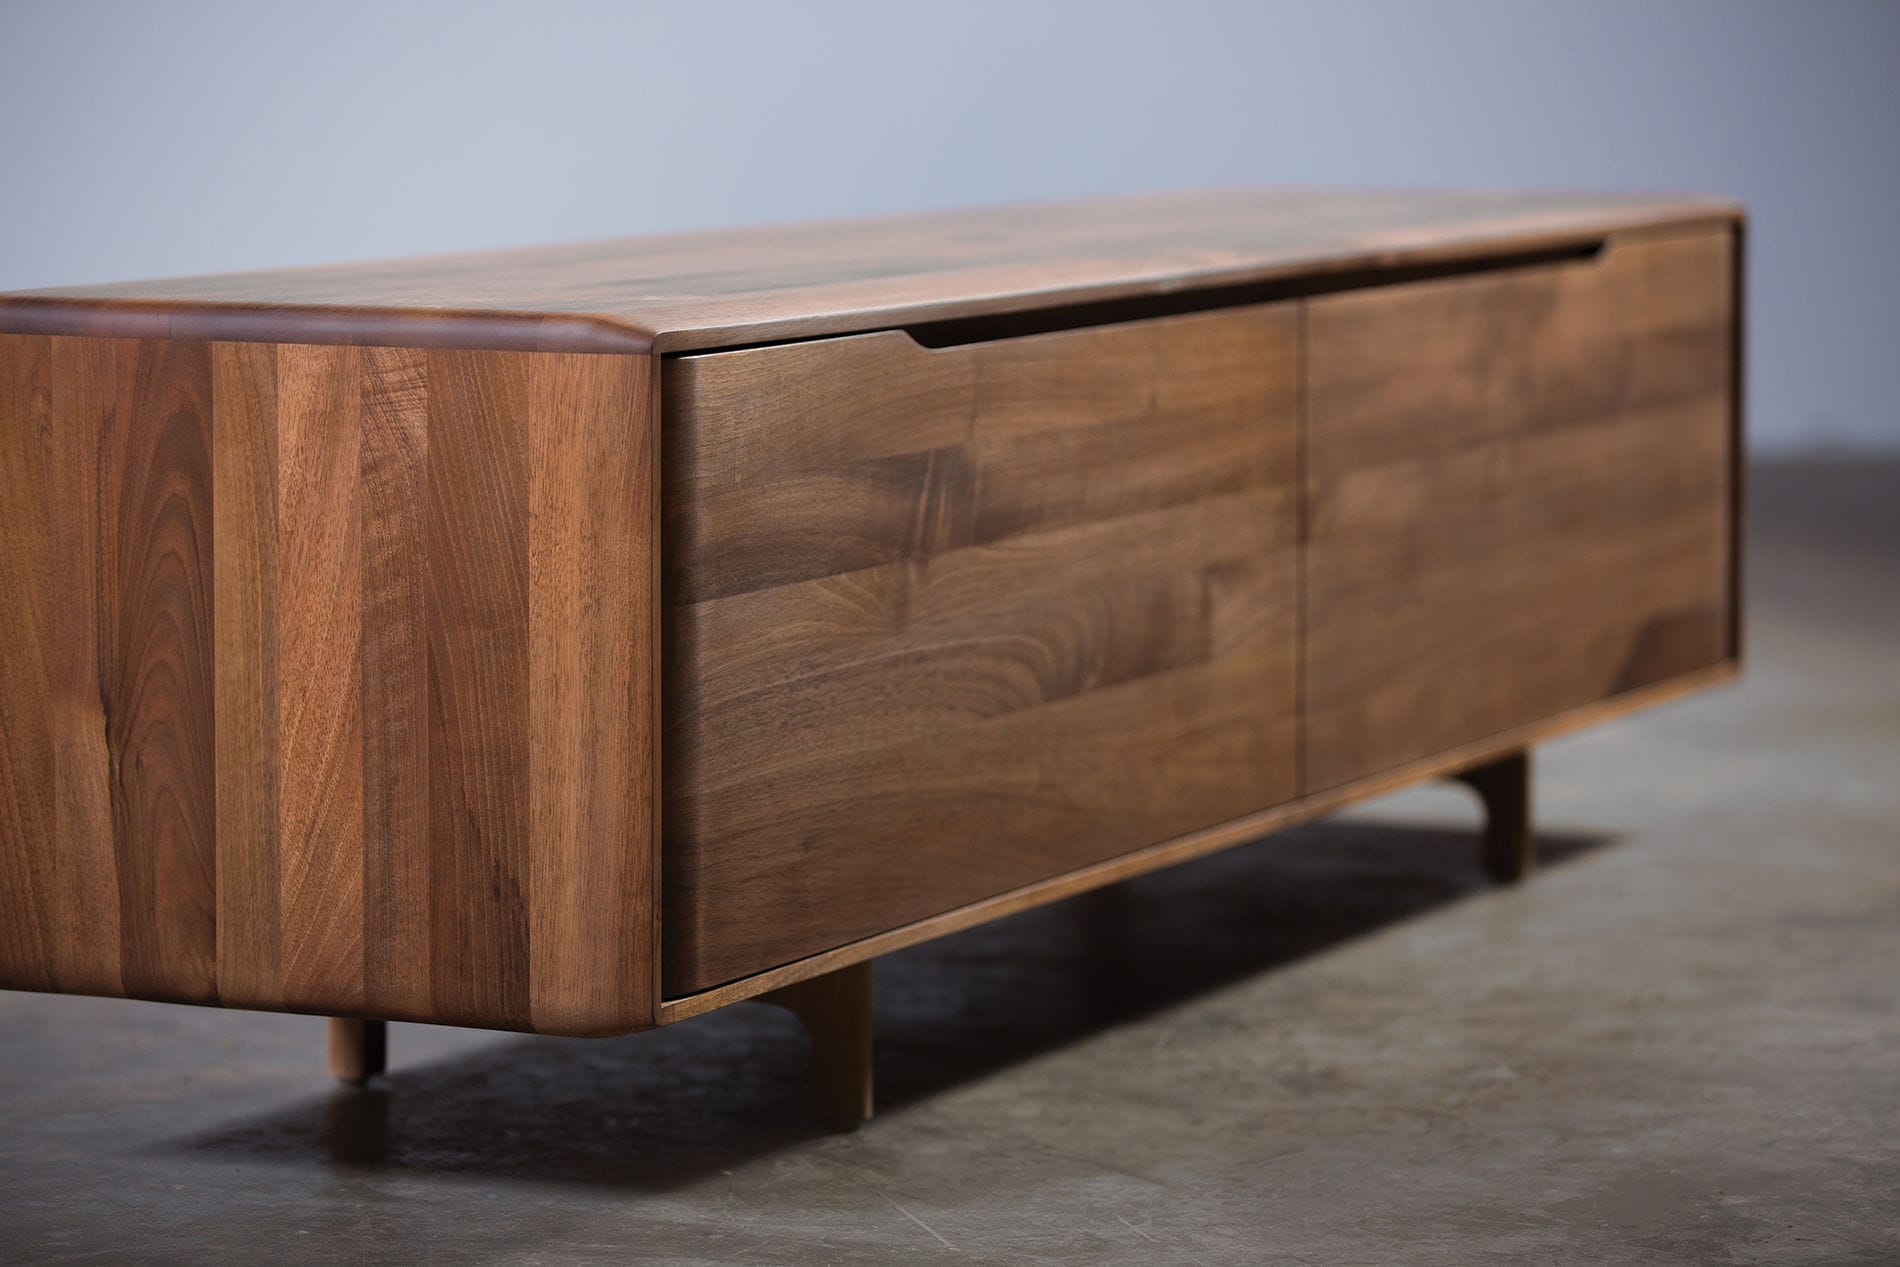 Contemporary sideboard   oak   walnut   solid wood INVITO by Michael  Schneider Artisan Solid Wood. Contemporary sideboard   oak   walnut   solid wood   INVITO by